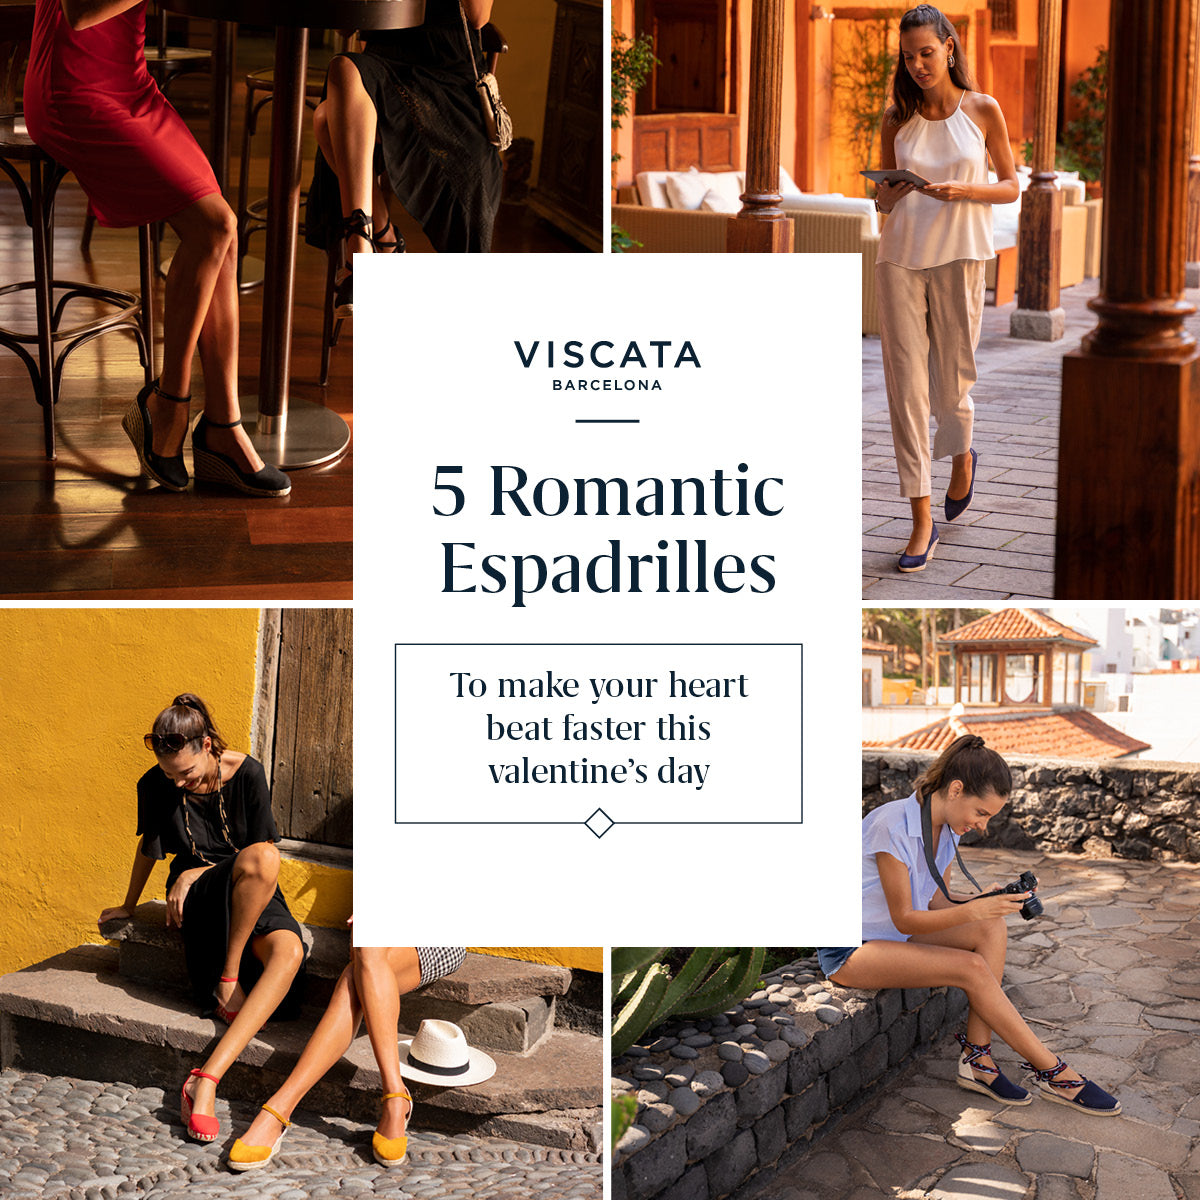 5 Romantic Espadrilles to make your heart beat